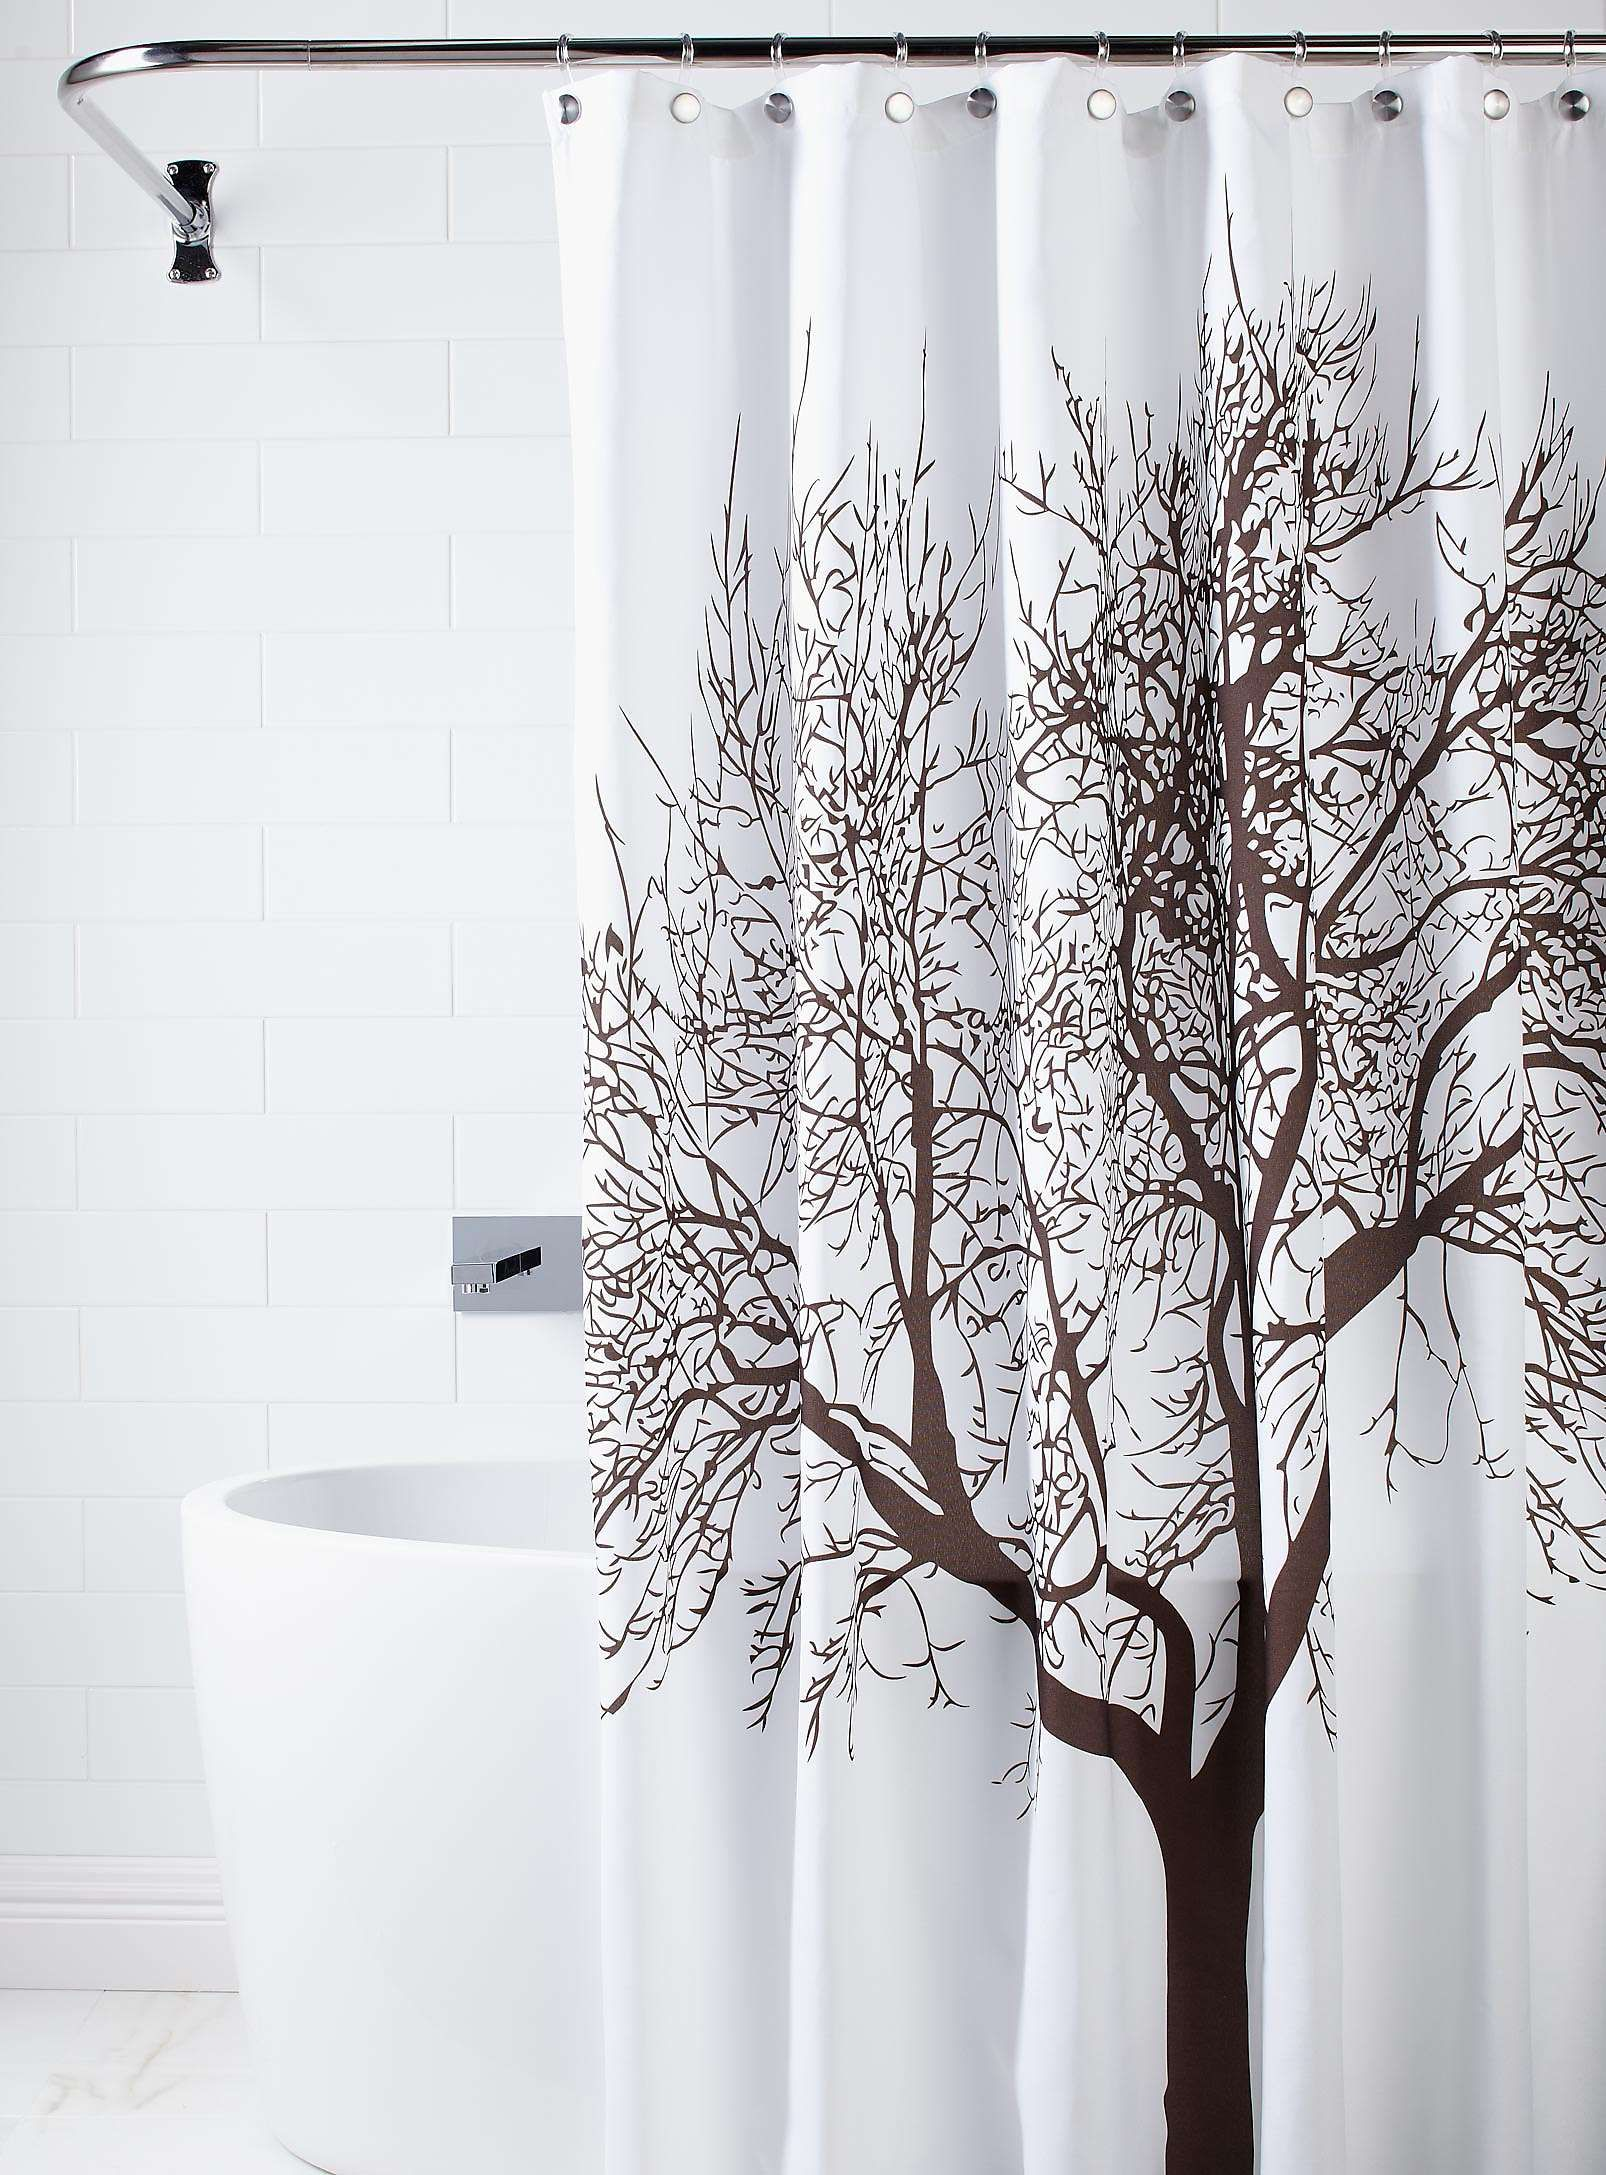 sublime rideau de douche arbre toilette pinterest rideaux de douche douches et les rideaux. Black Bedroom Furniture Sets. Home Design Ideas